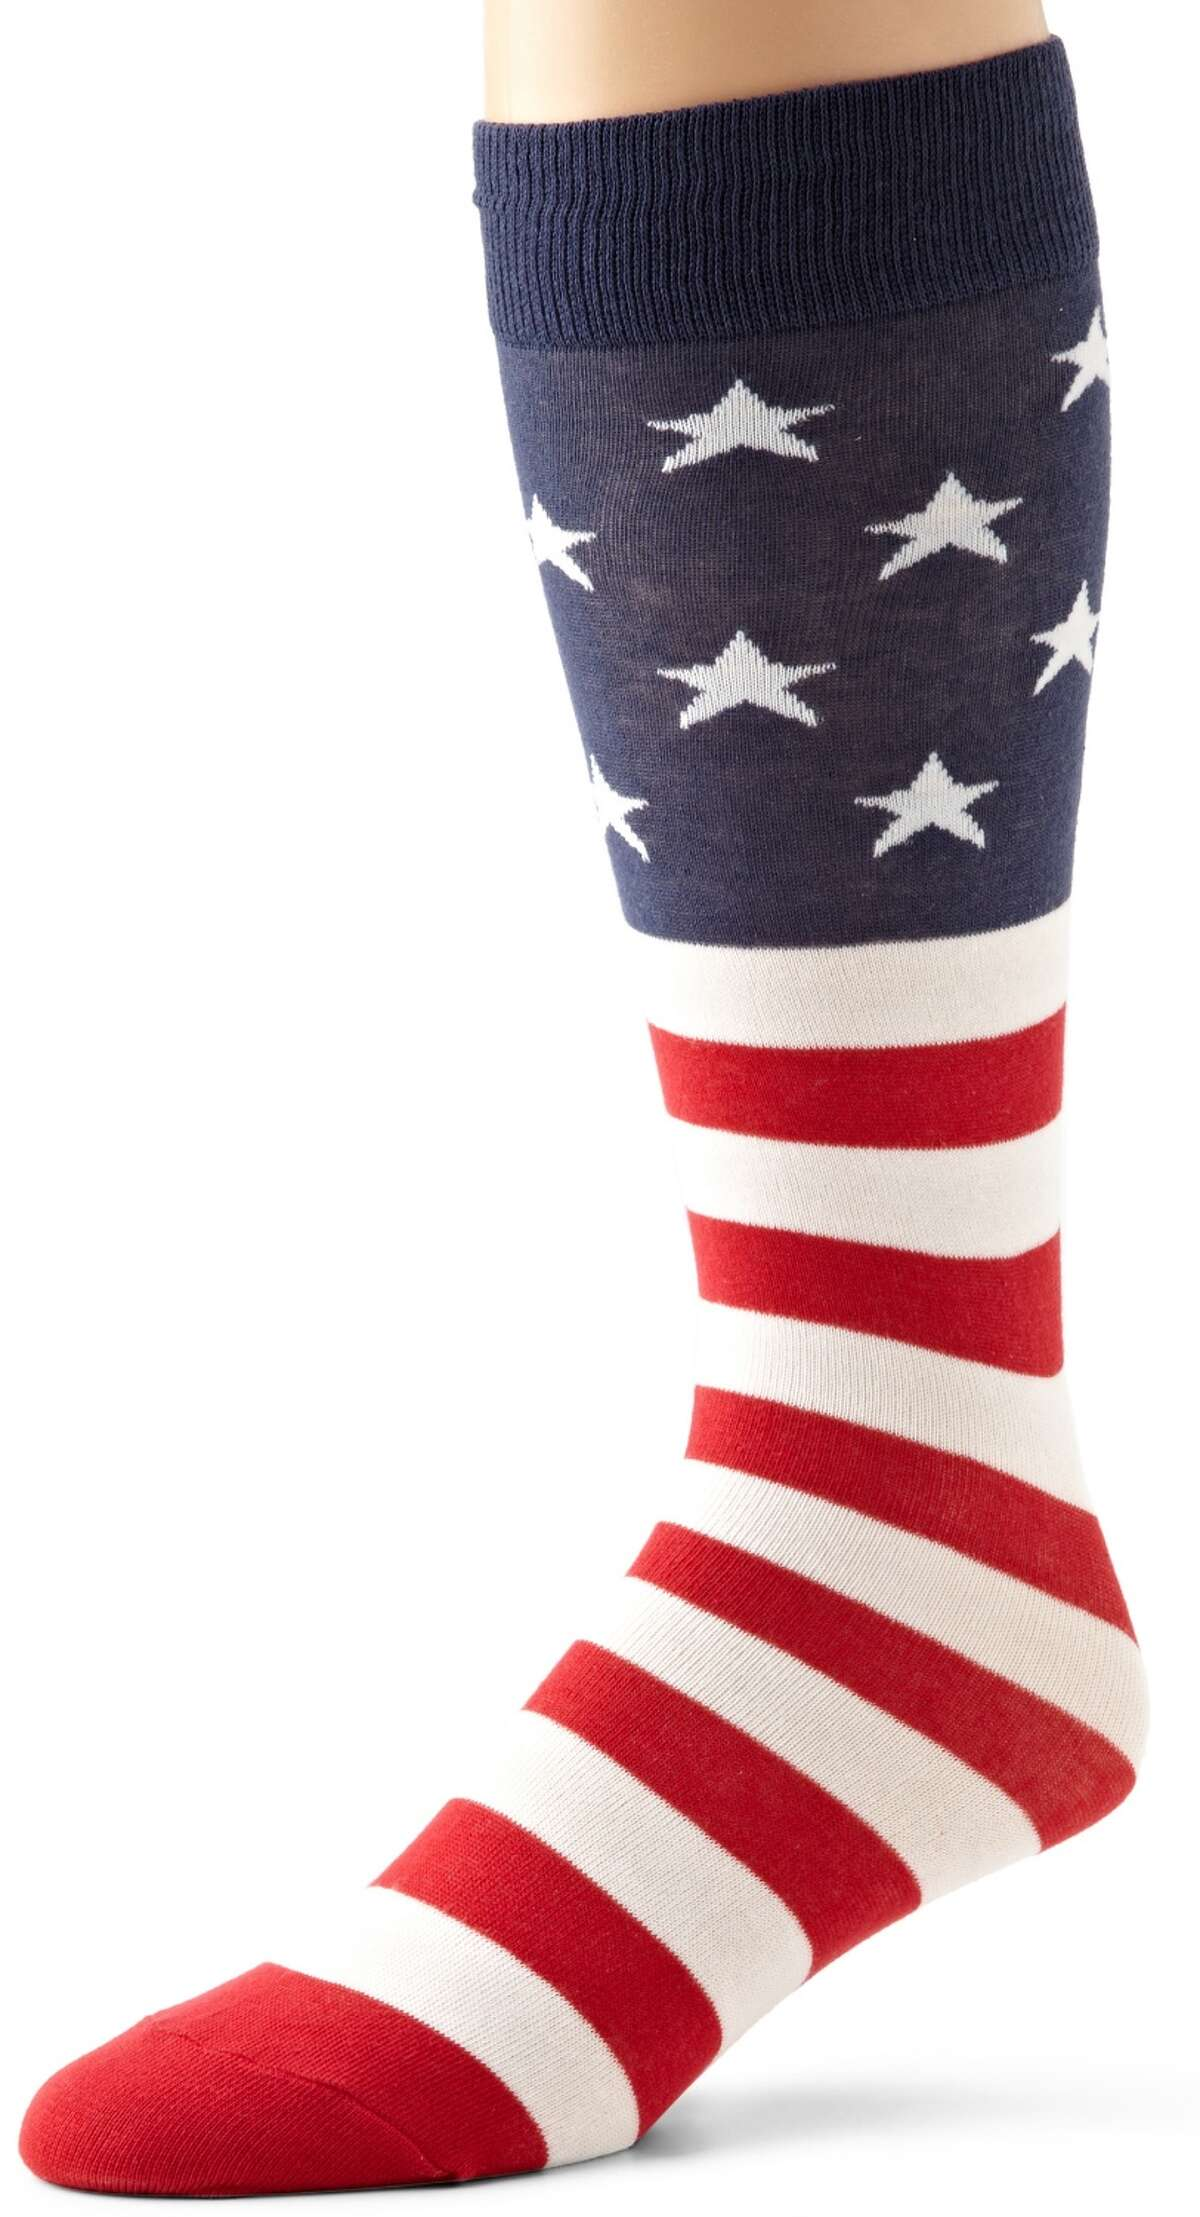 Stars-and-stripes stockings